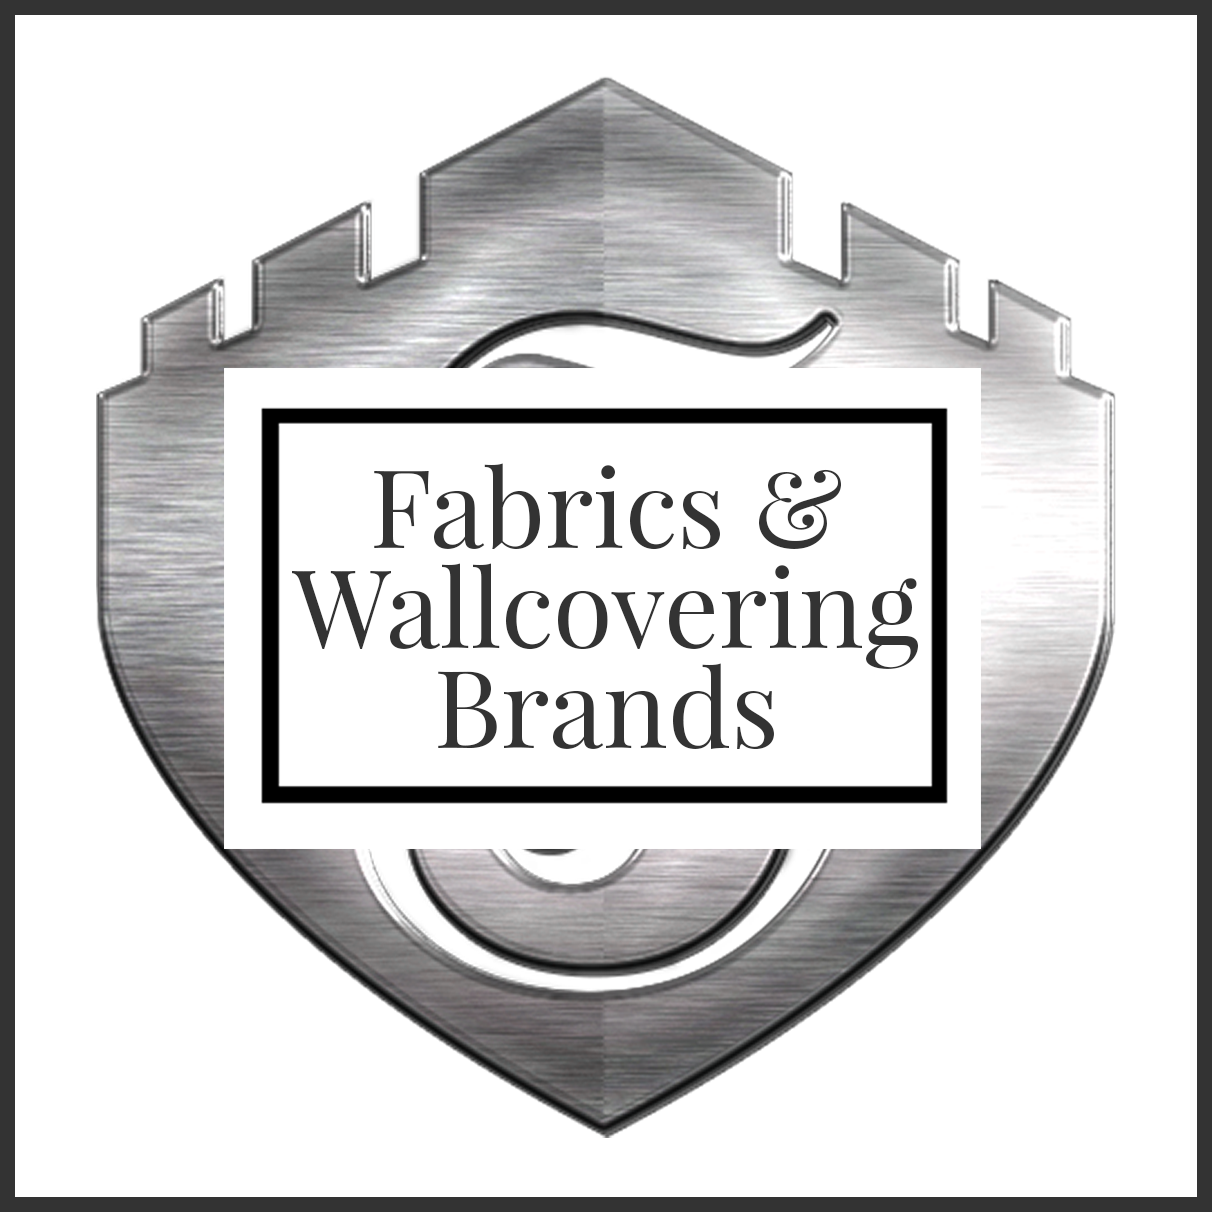 Fabrics & Wallcovering Brands